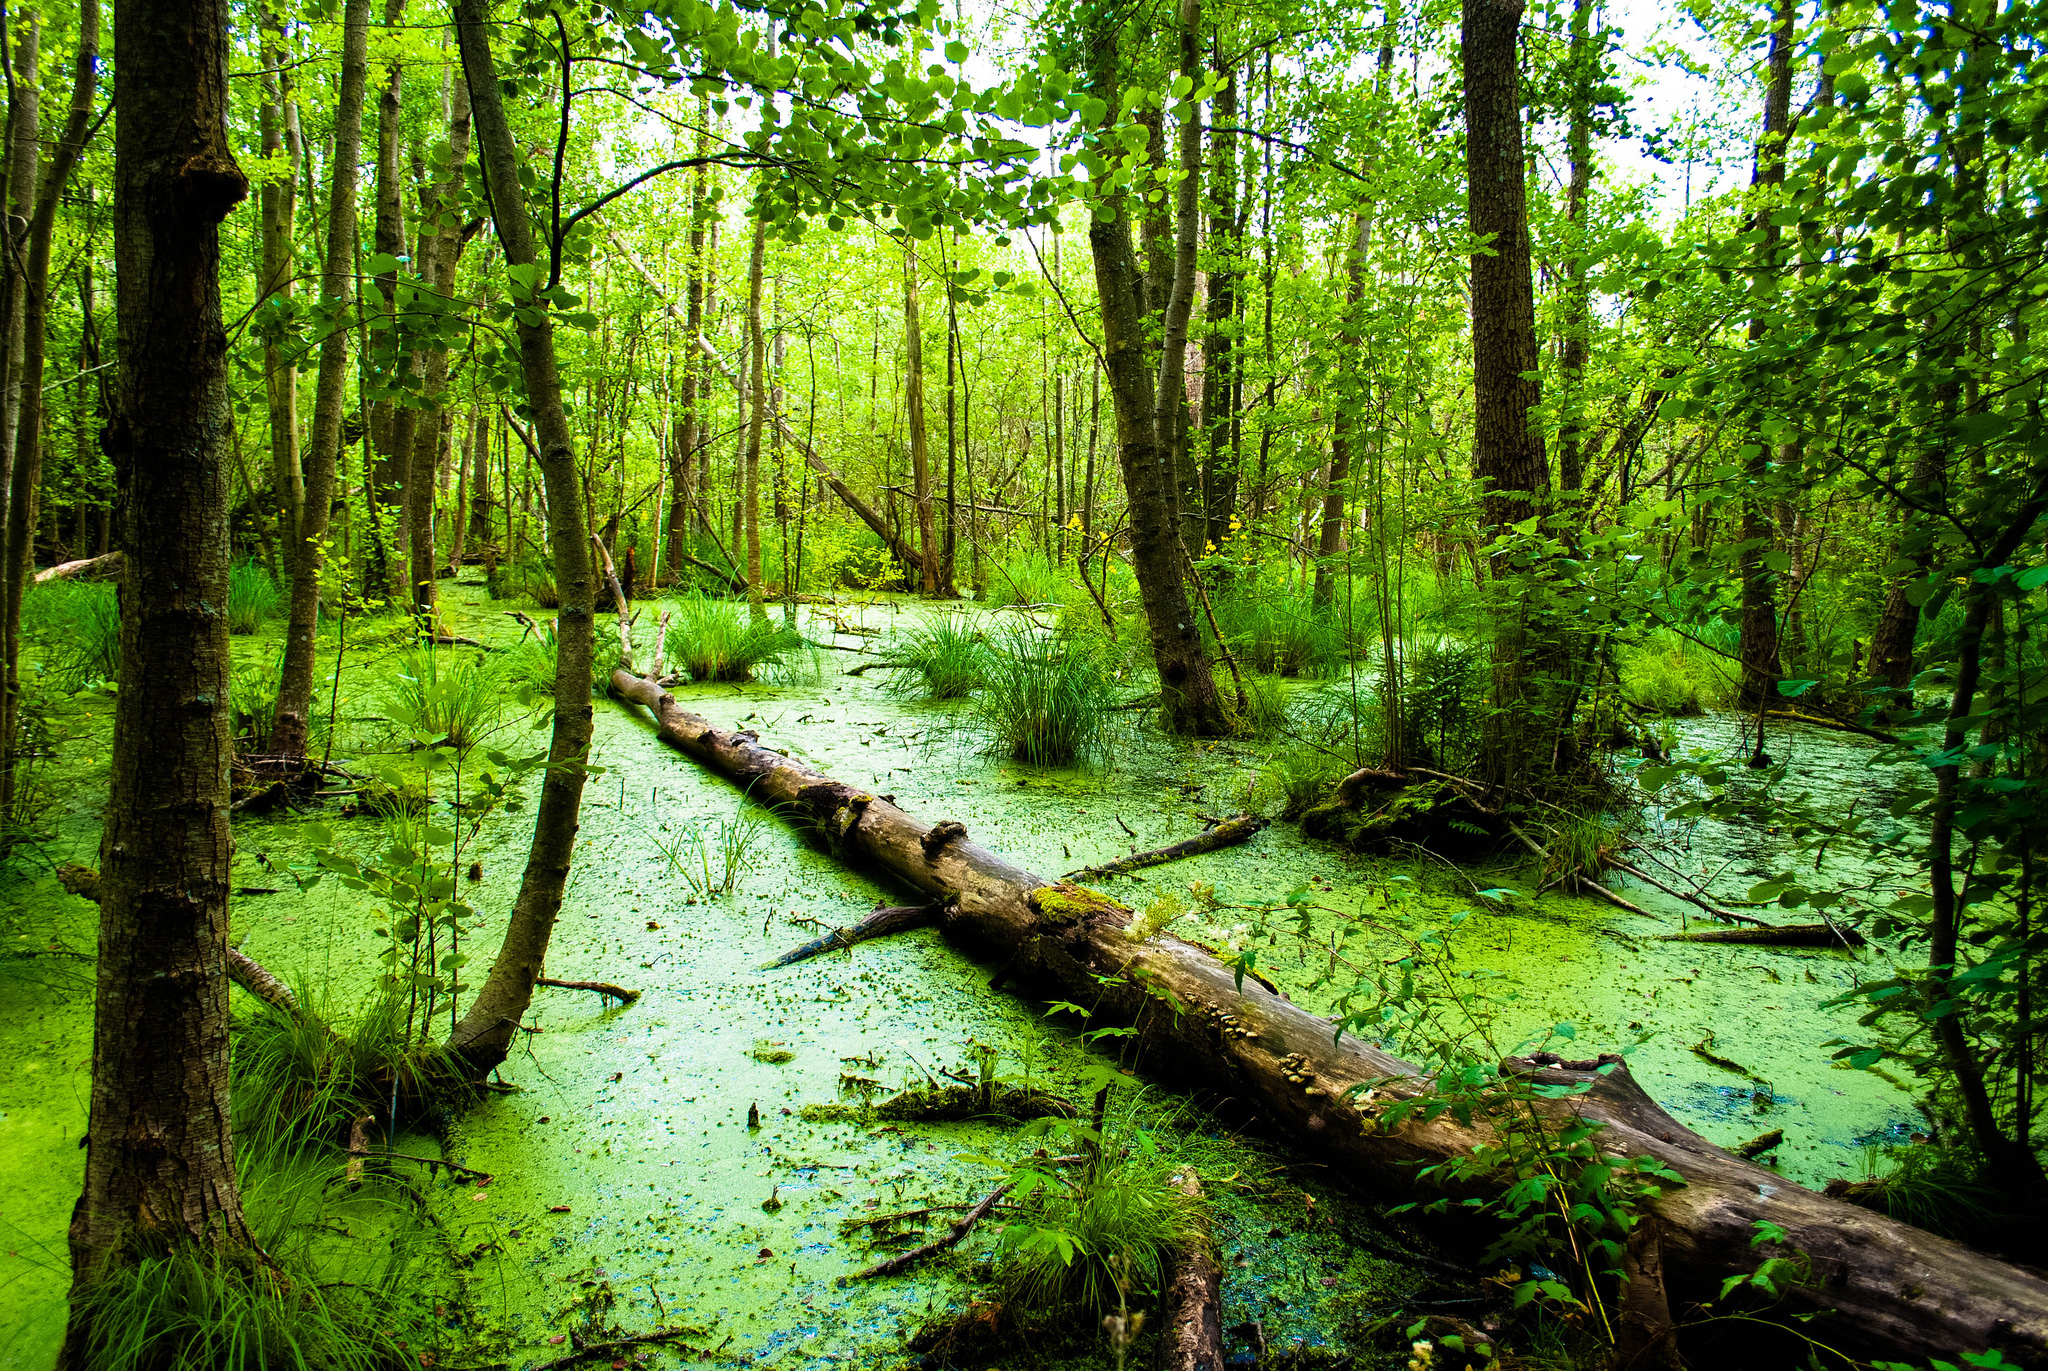 84 Swamp HD Wallpapers | Background Images - Wallpaper Abyss